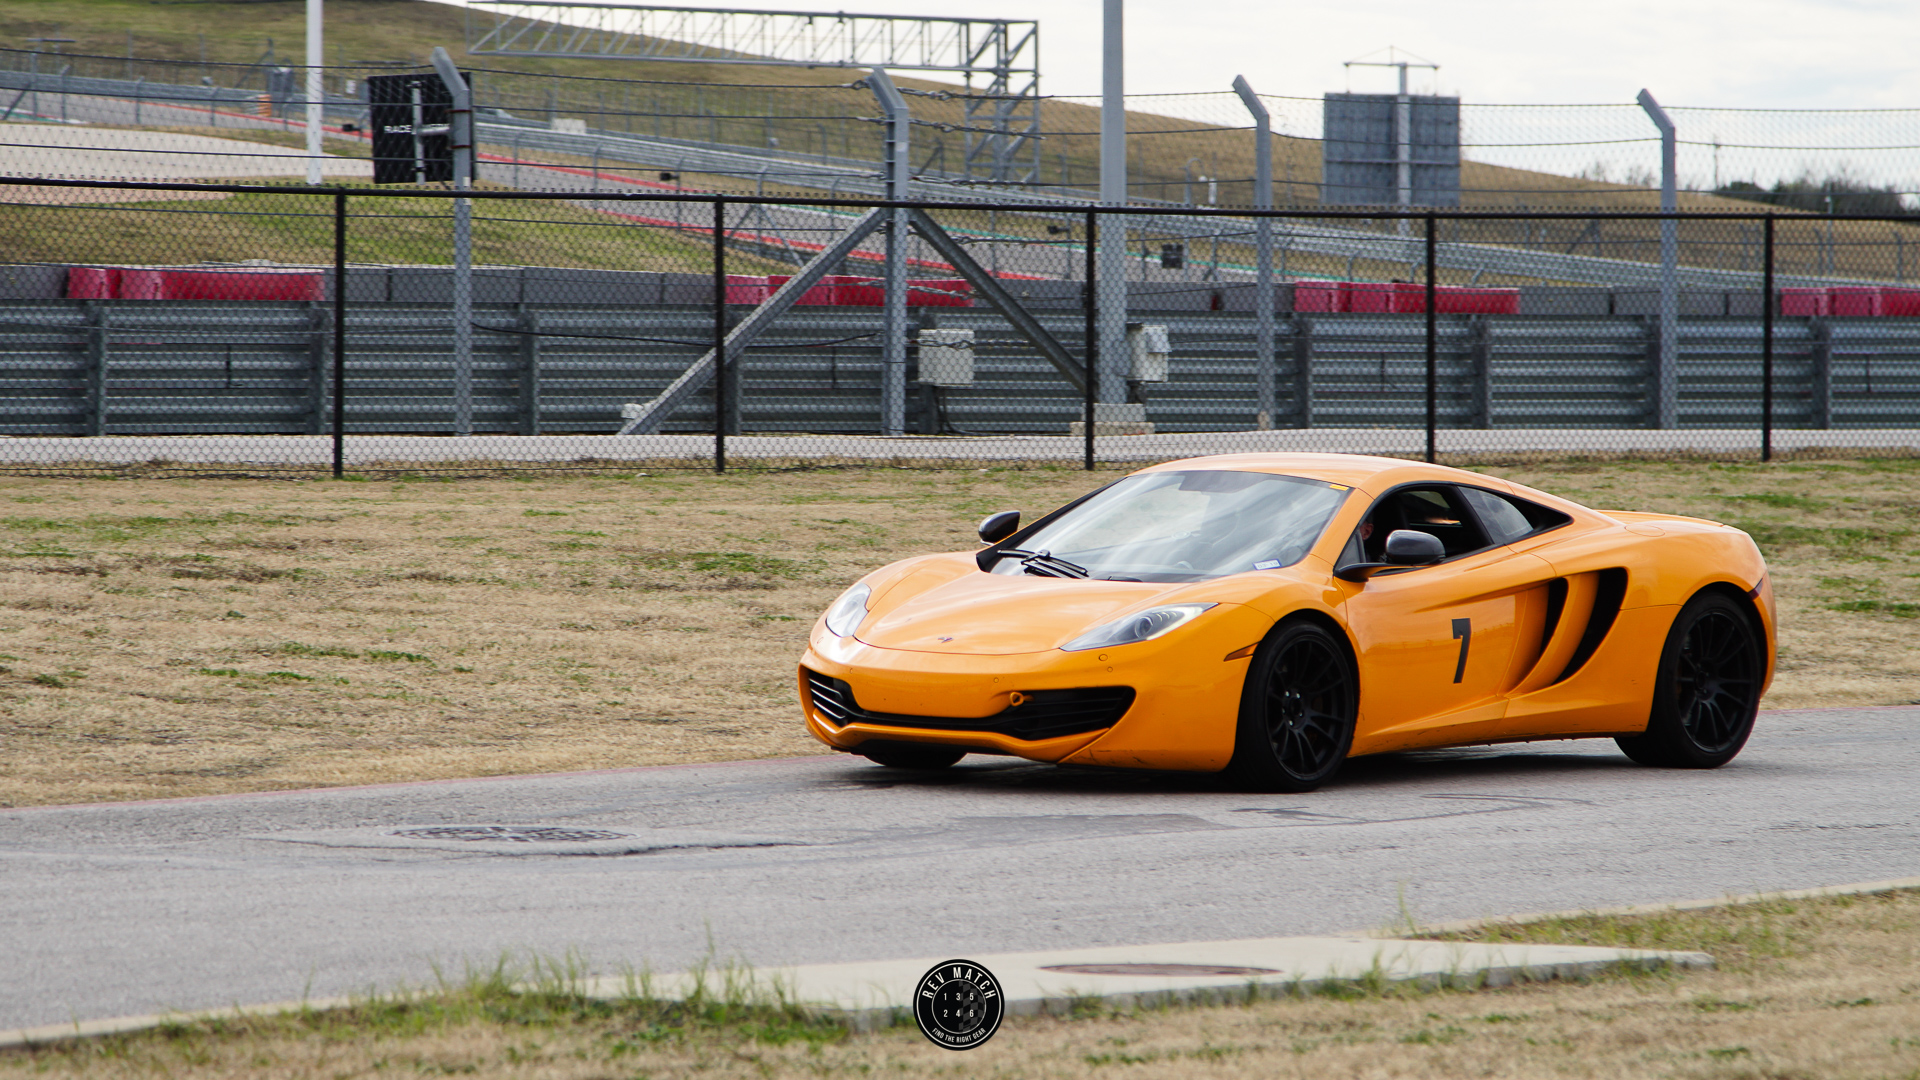 Edge Addicts at COTA December 2018-1.jpg